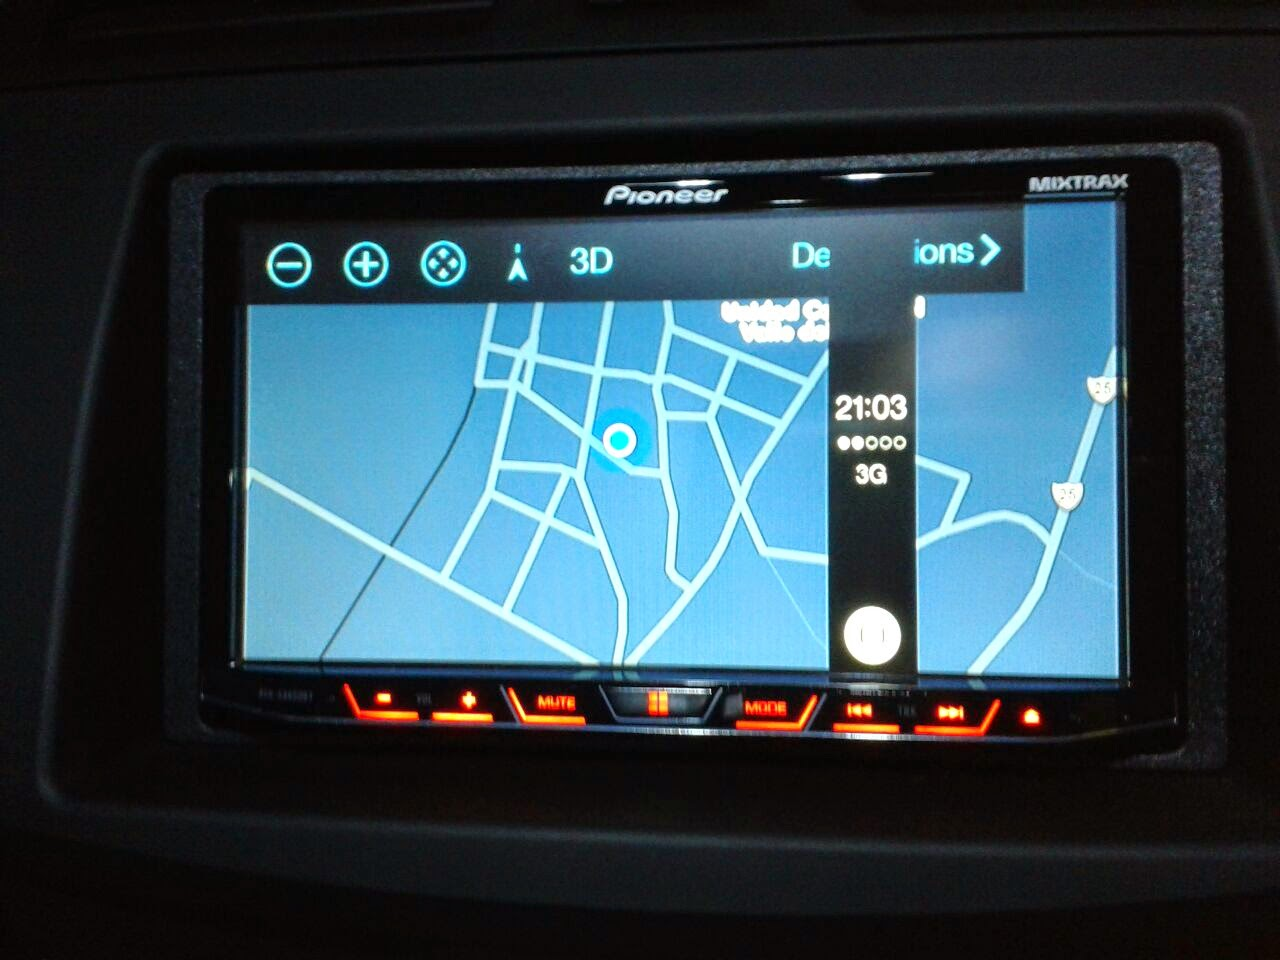 pioneer 4201nex. appradioworld - apple carplay, android auto, car technology news: how to fix rare carplay display issue on pioneer nex 4201nex